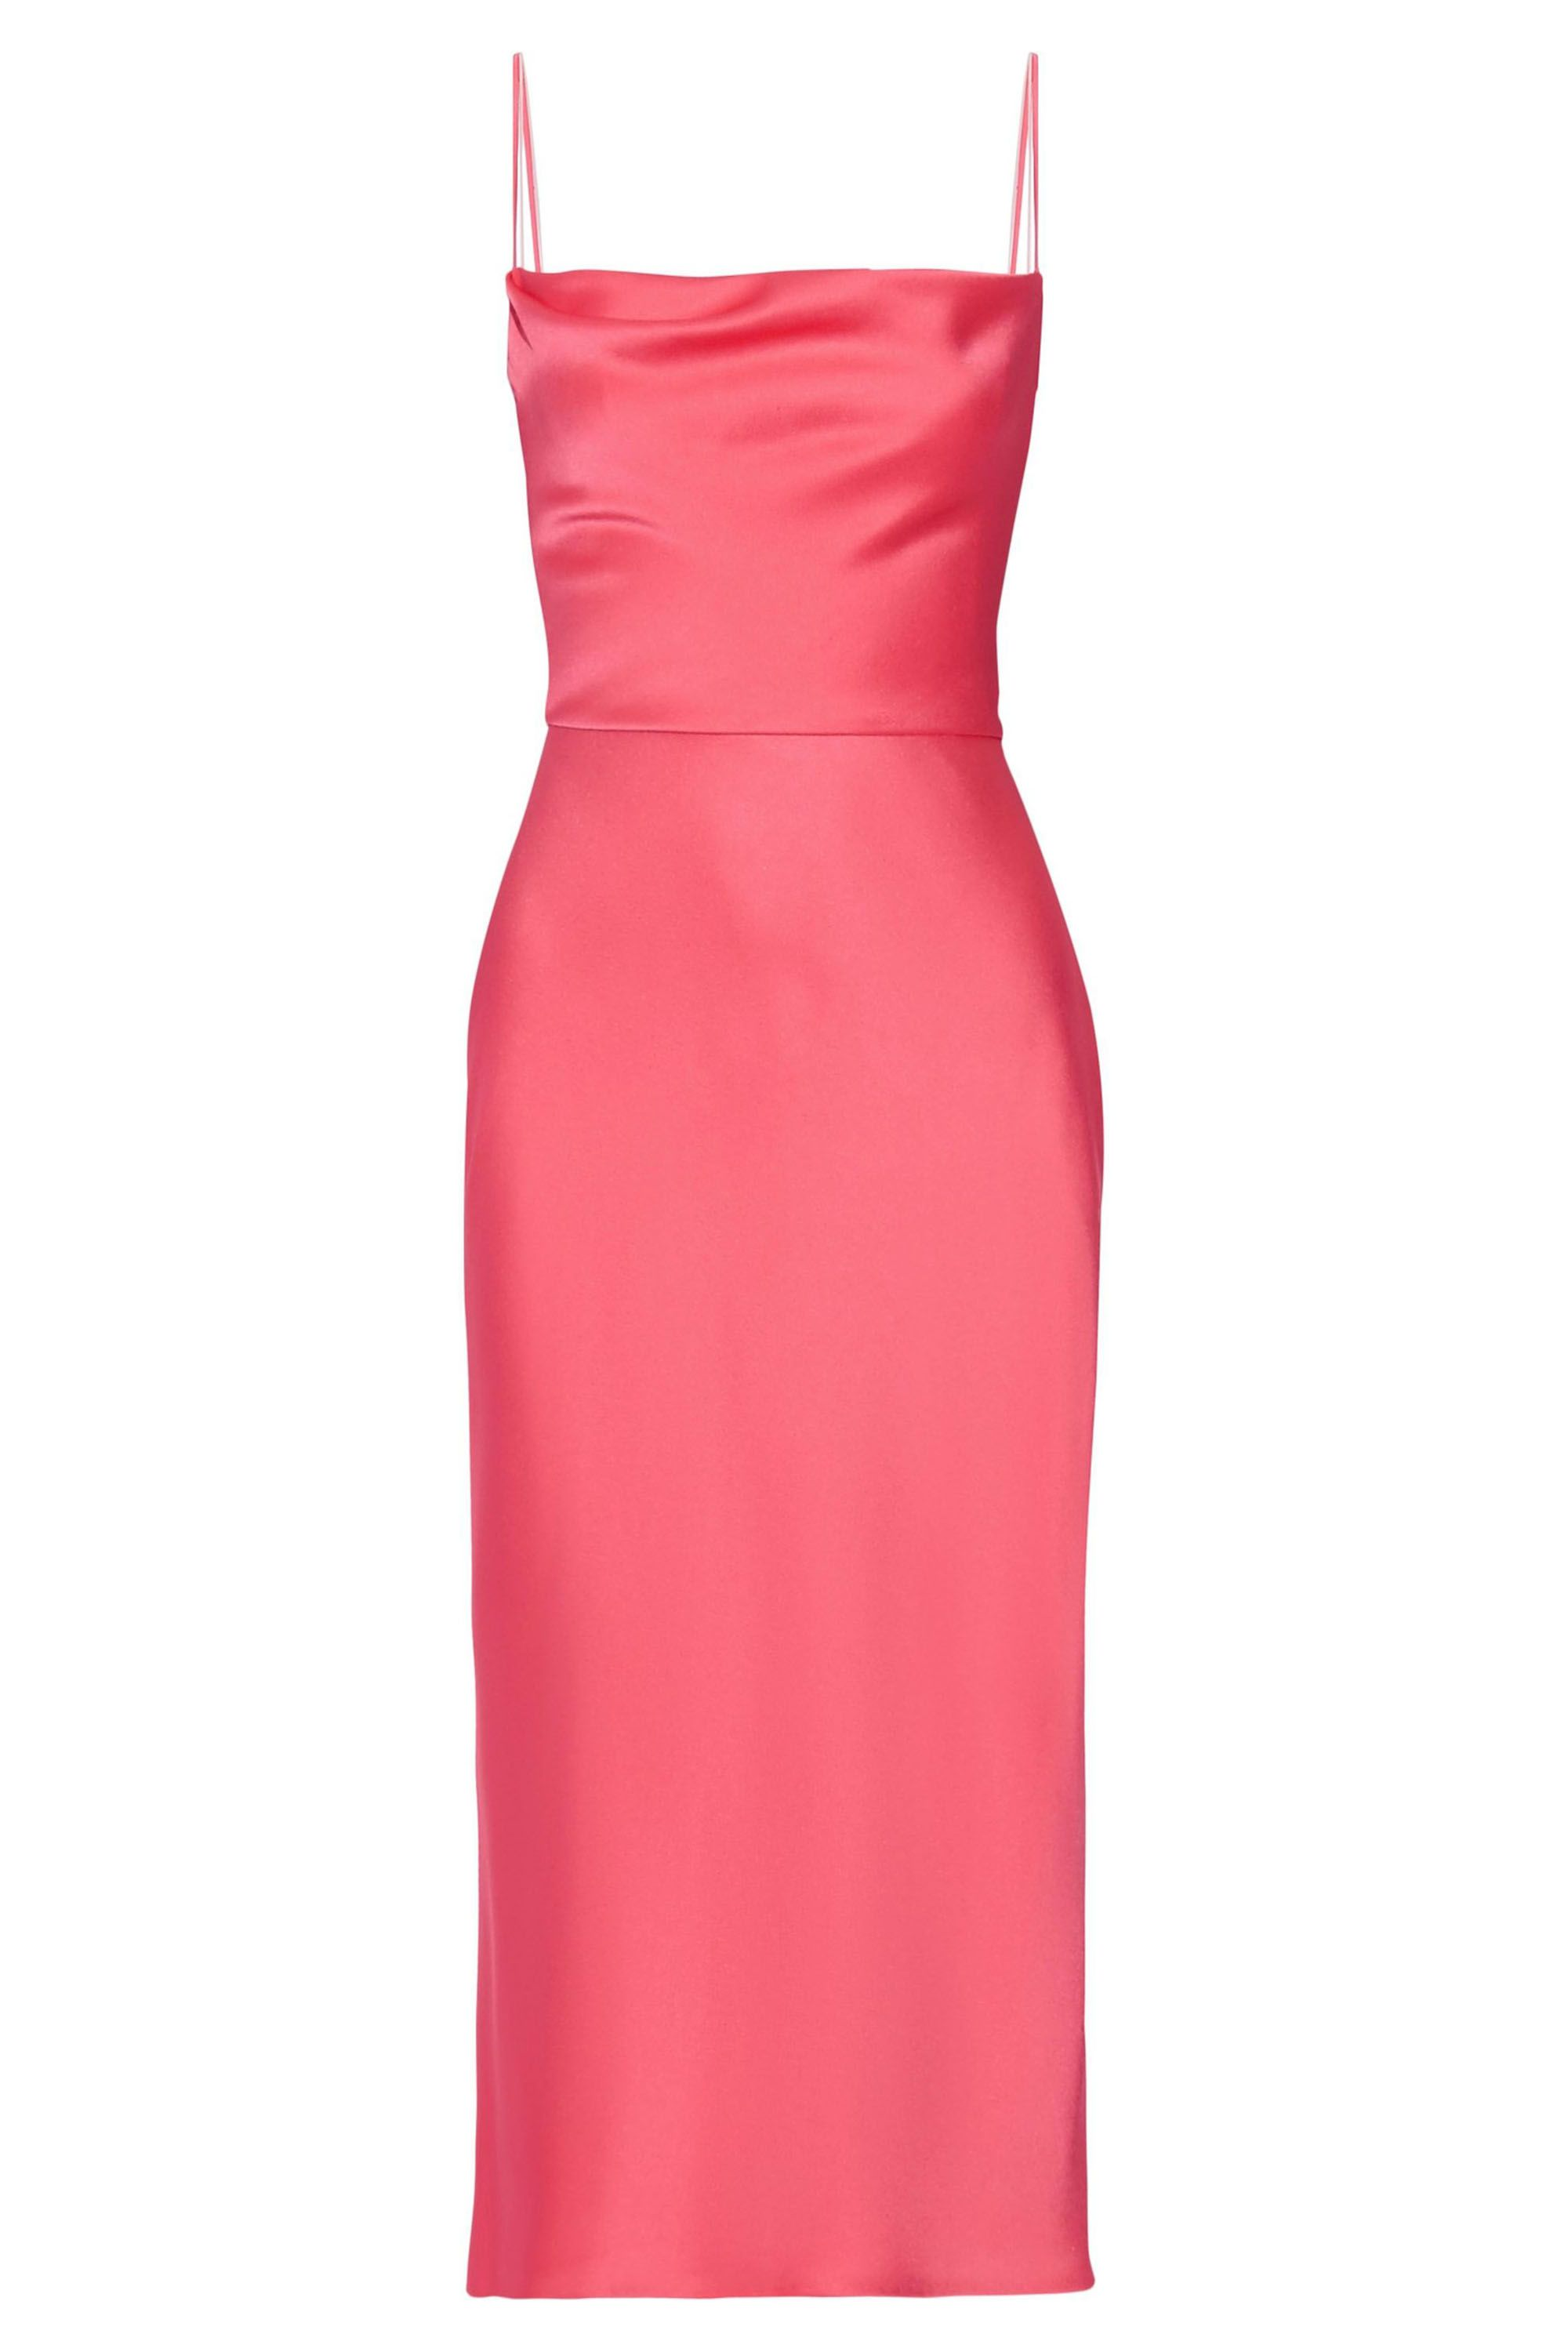 25 Dresses to Wear To Spring Weddings 2018 - 25 Wedding Guest ...